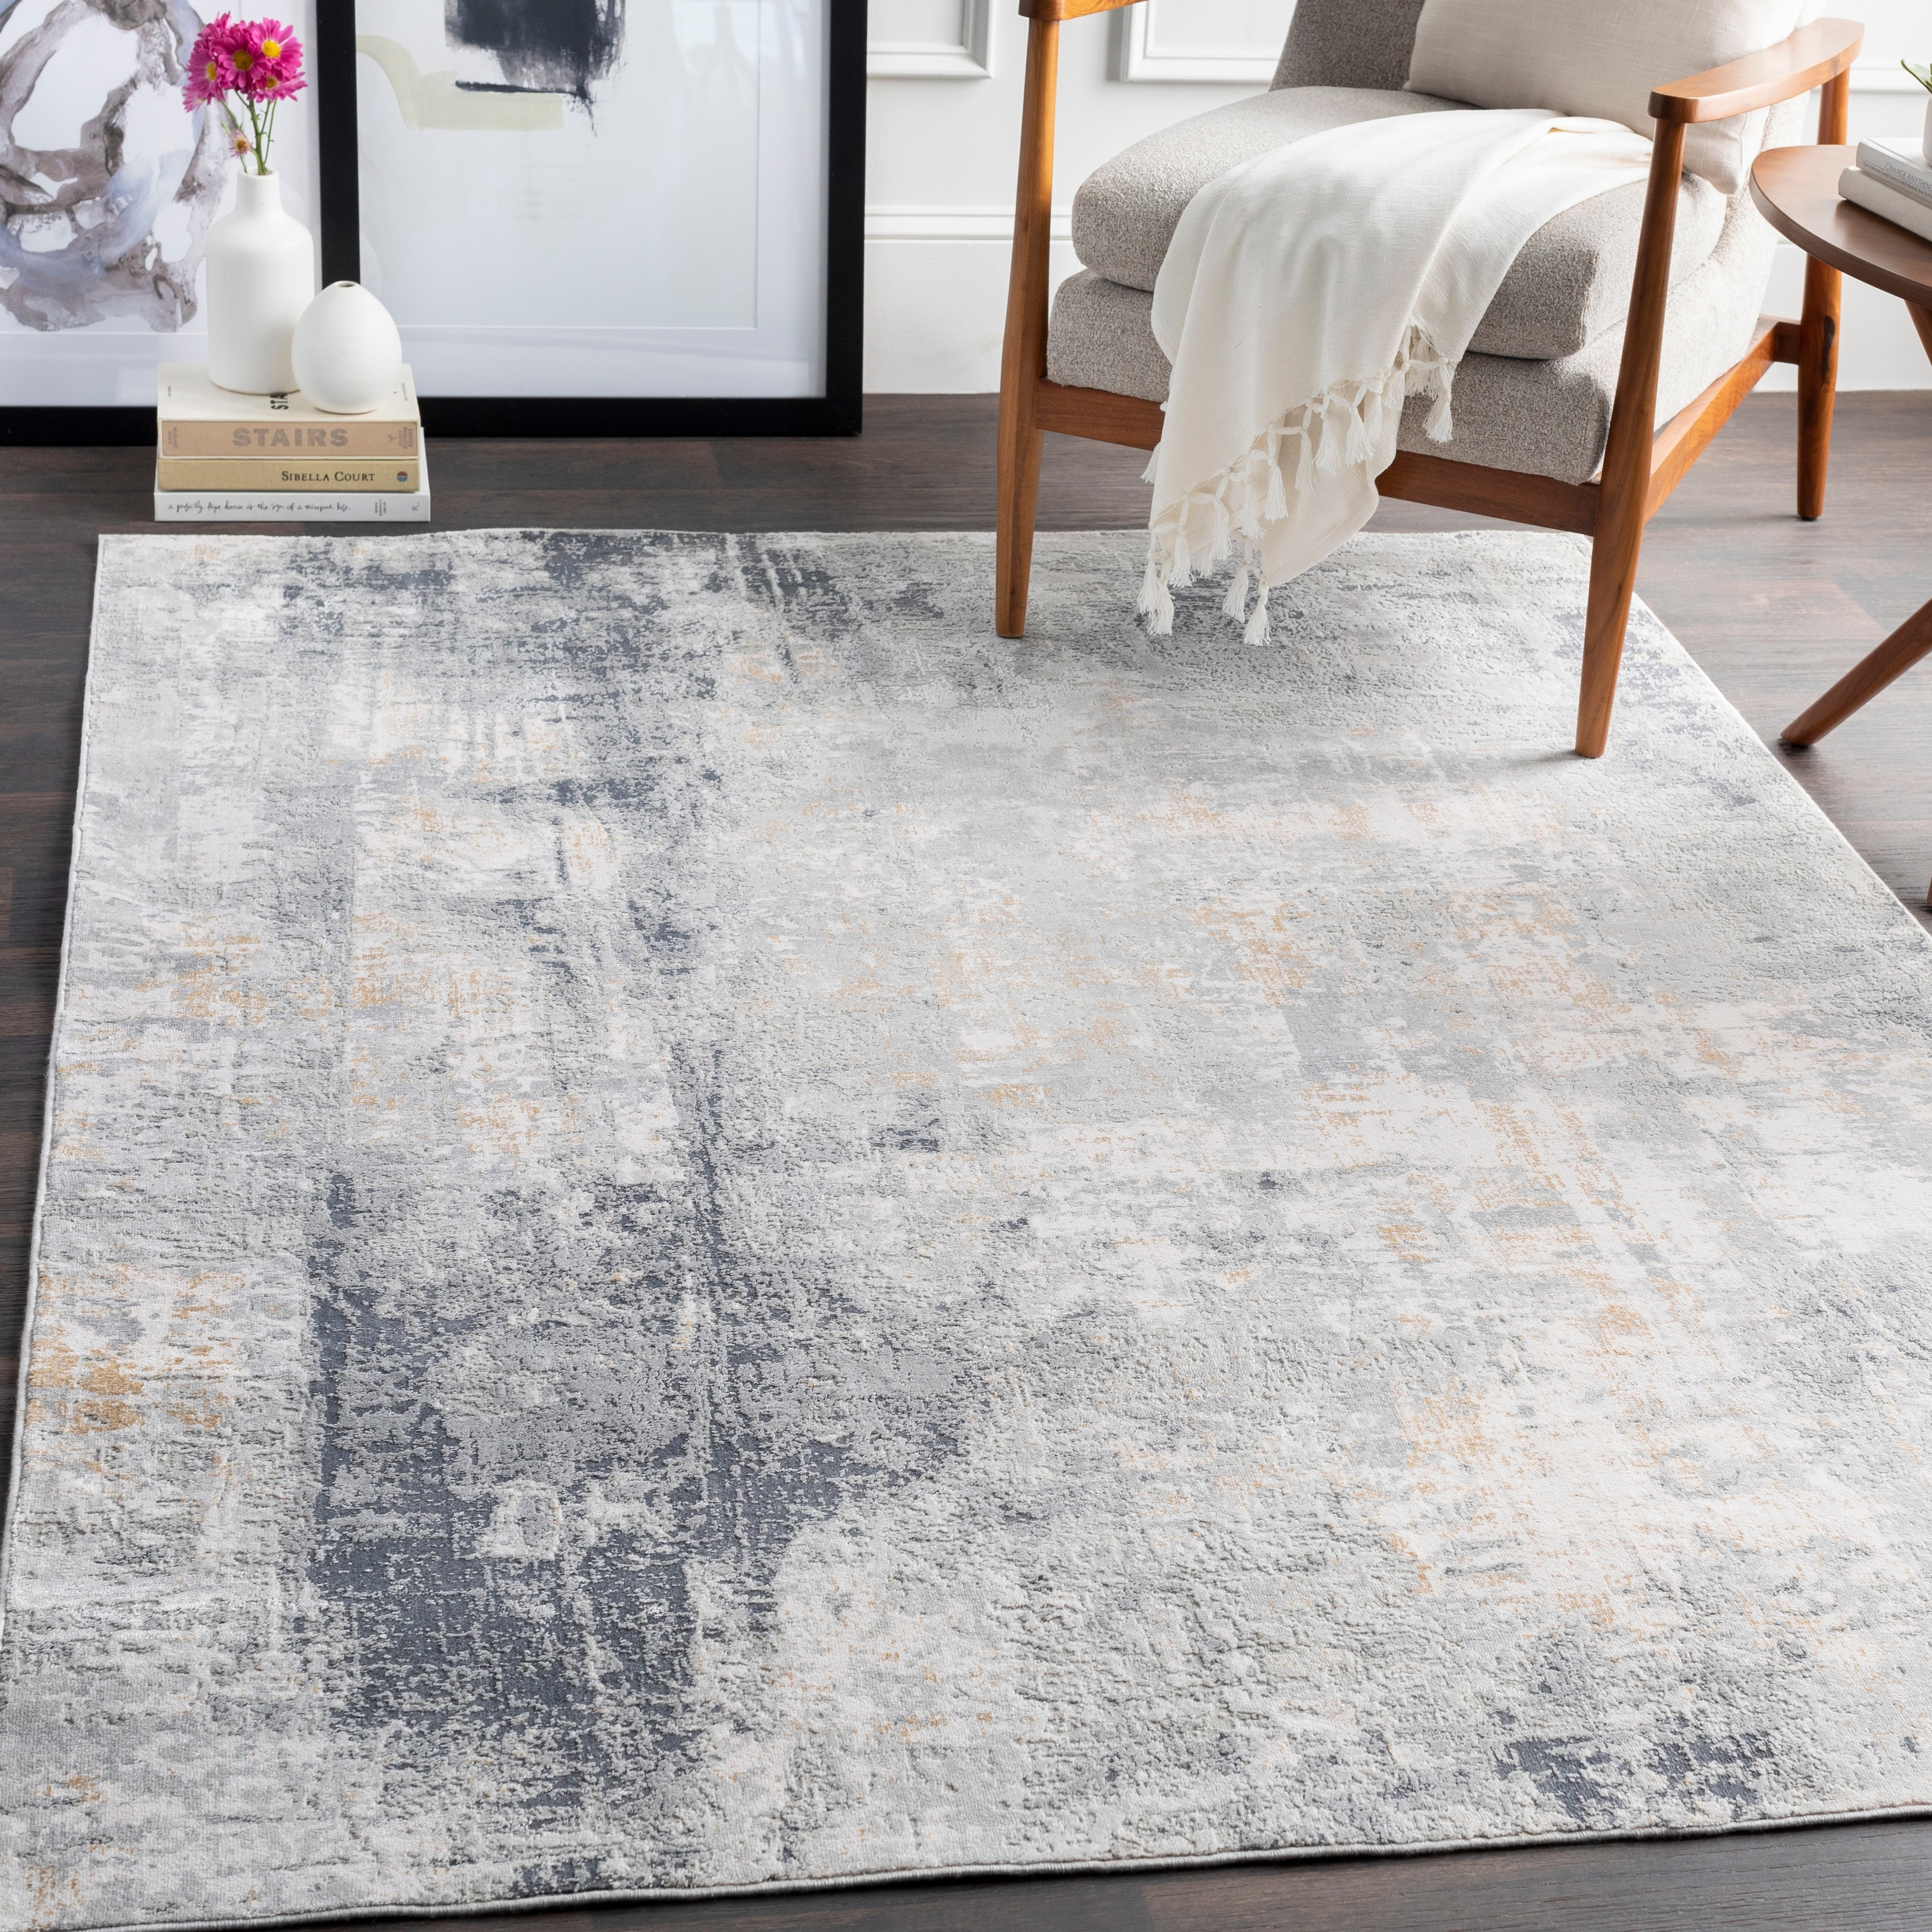 The Gray Barn Brook Haven Light Grey And Tan Modern Area Rug On Sale Overstock 26637097